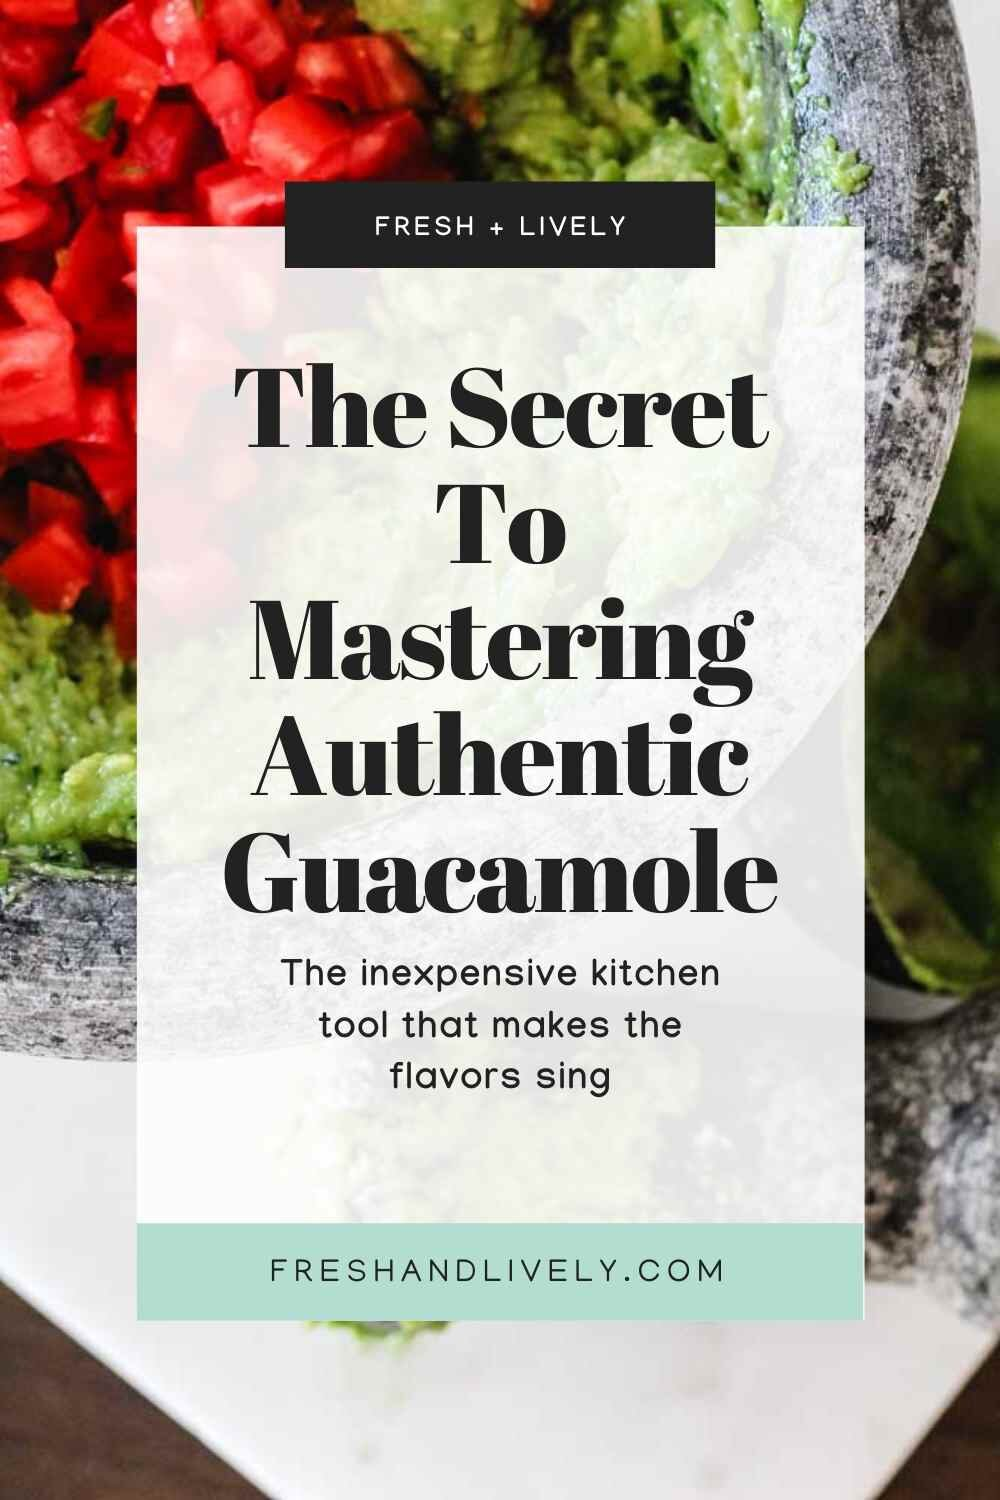 Guacamole ingredients are ground in a traditional molcajete. Post includes guacamole recipe - easy!